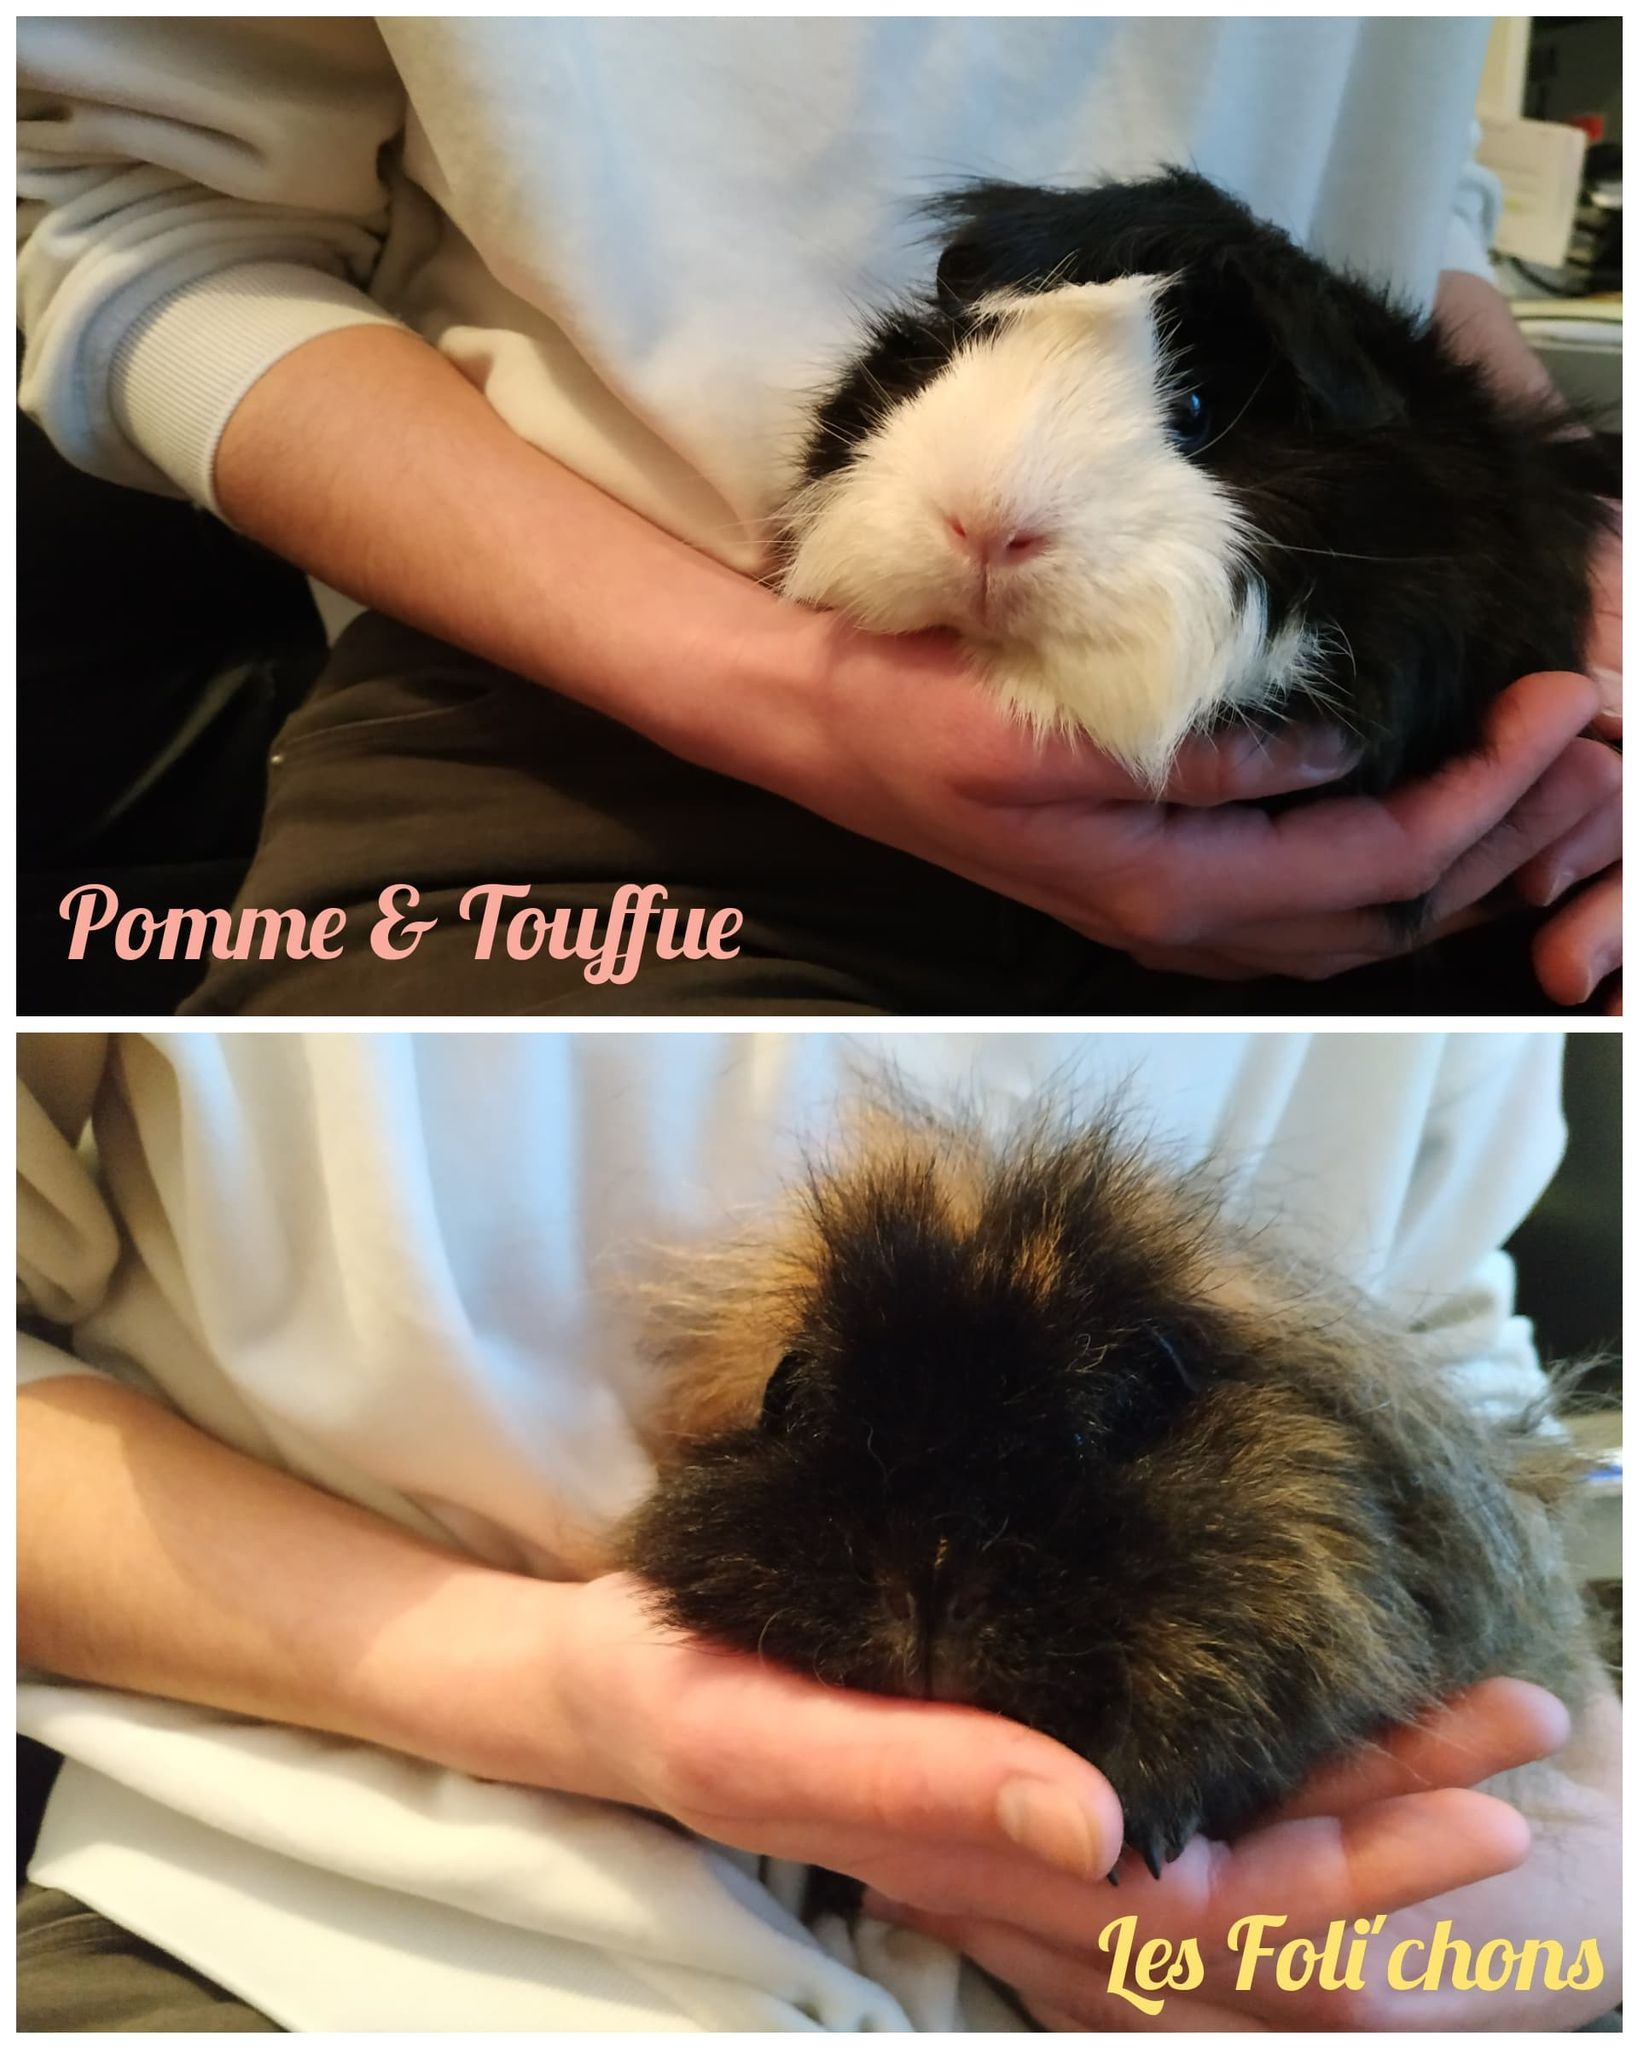 Pomme & Touffue